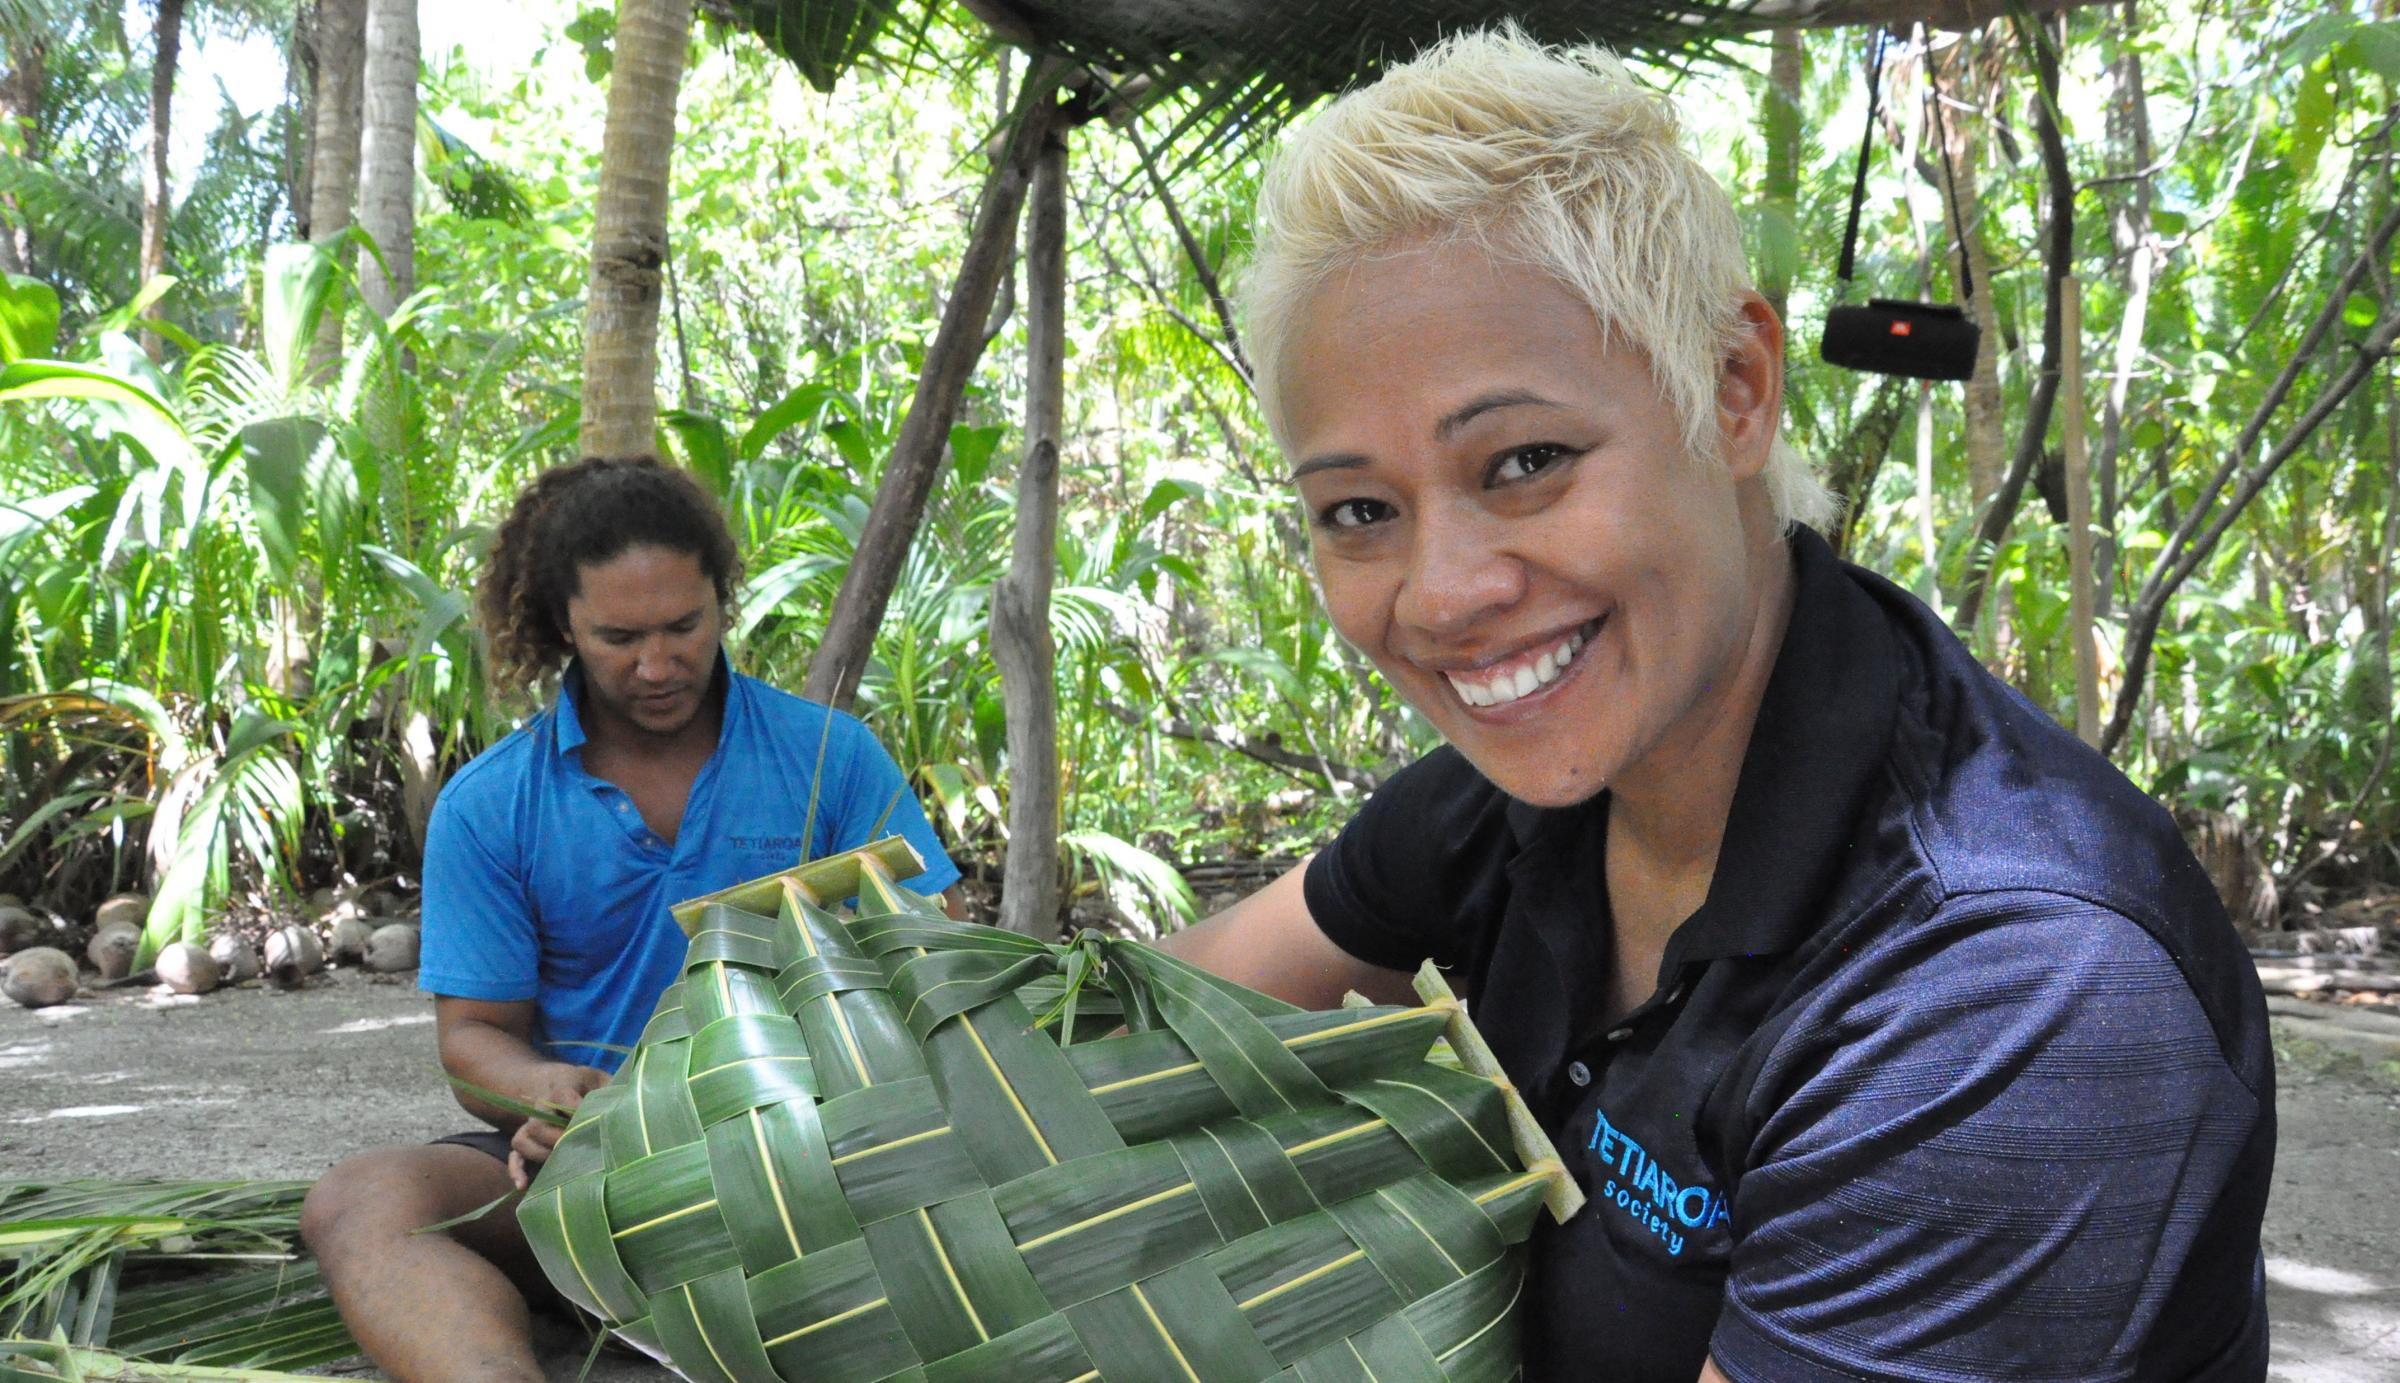 Monica Galetti is in French Polynesia for this week's Amazing Hotels